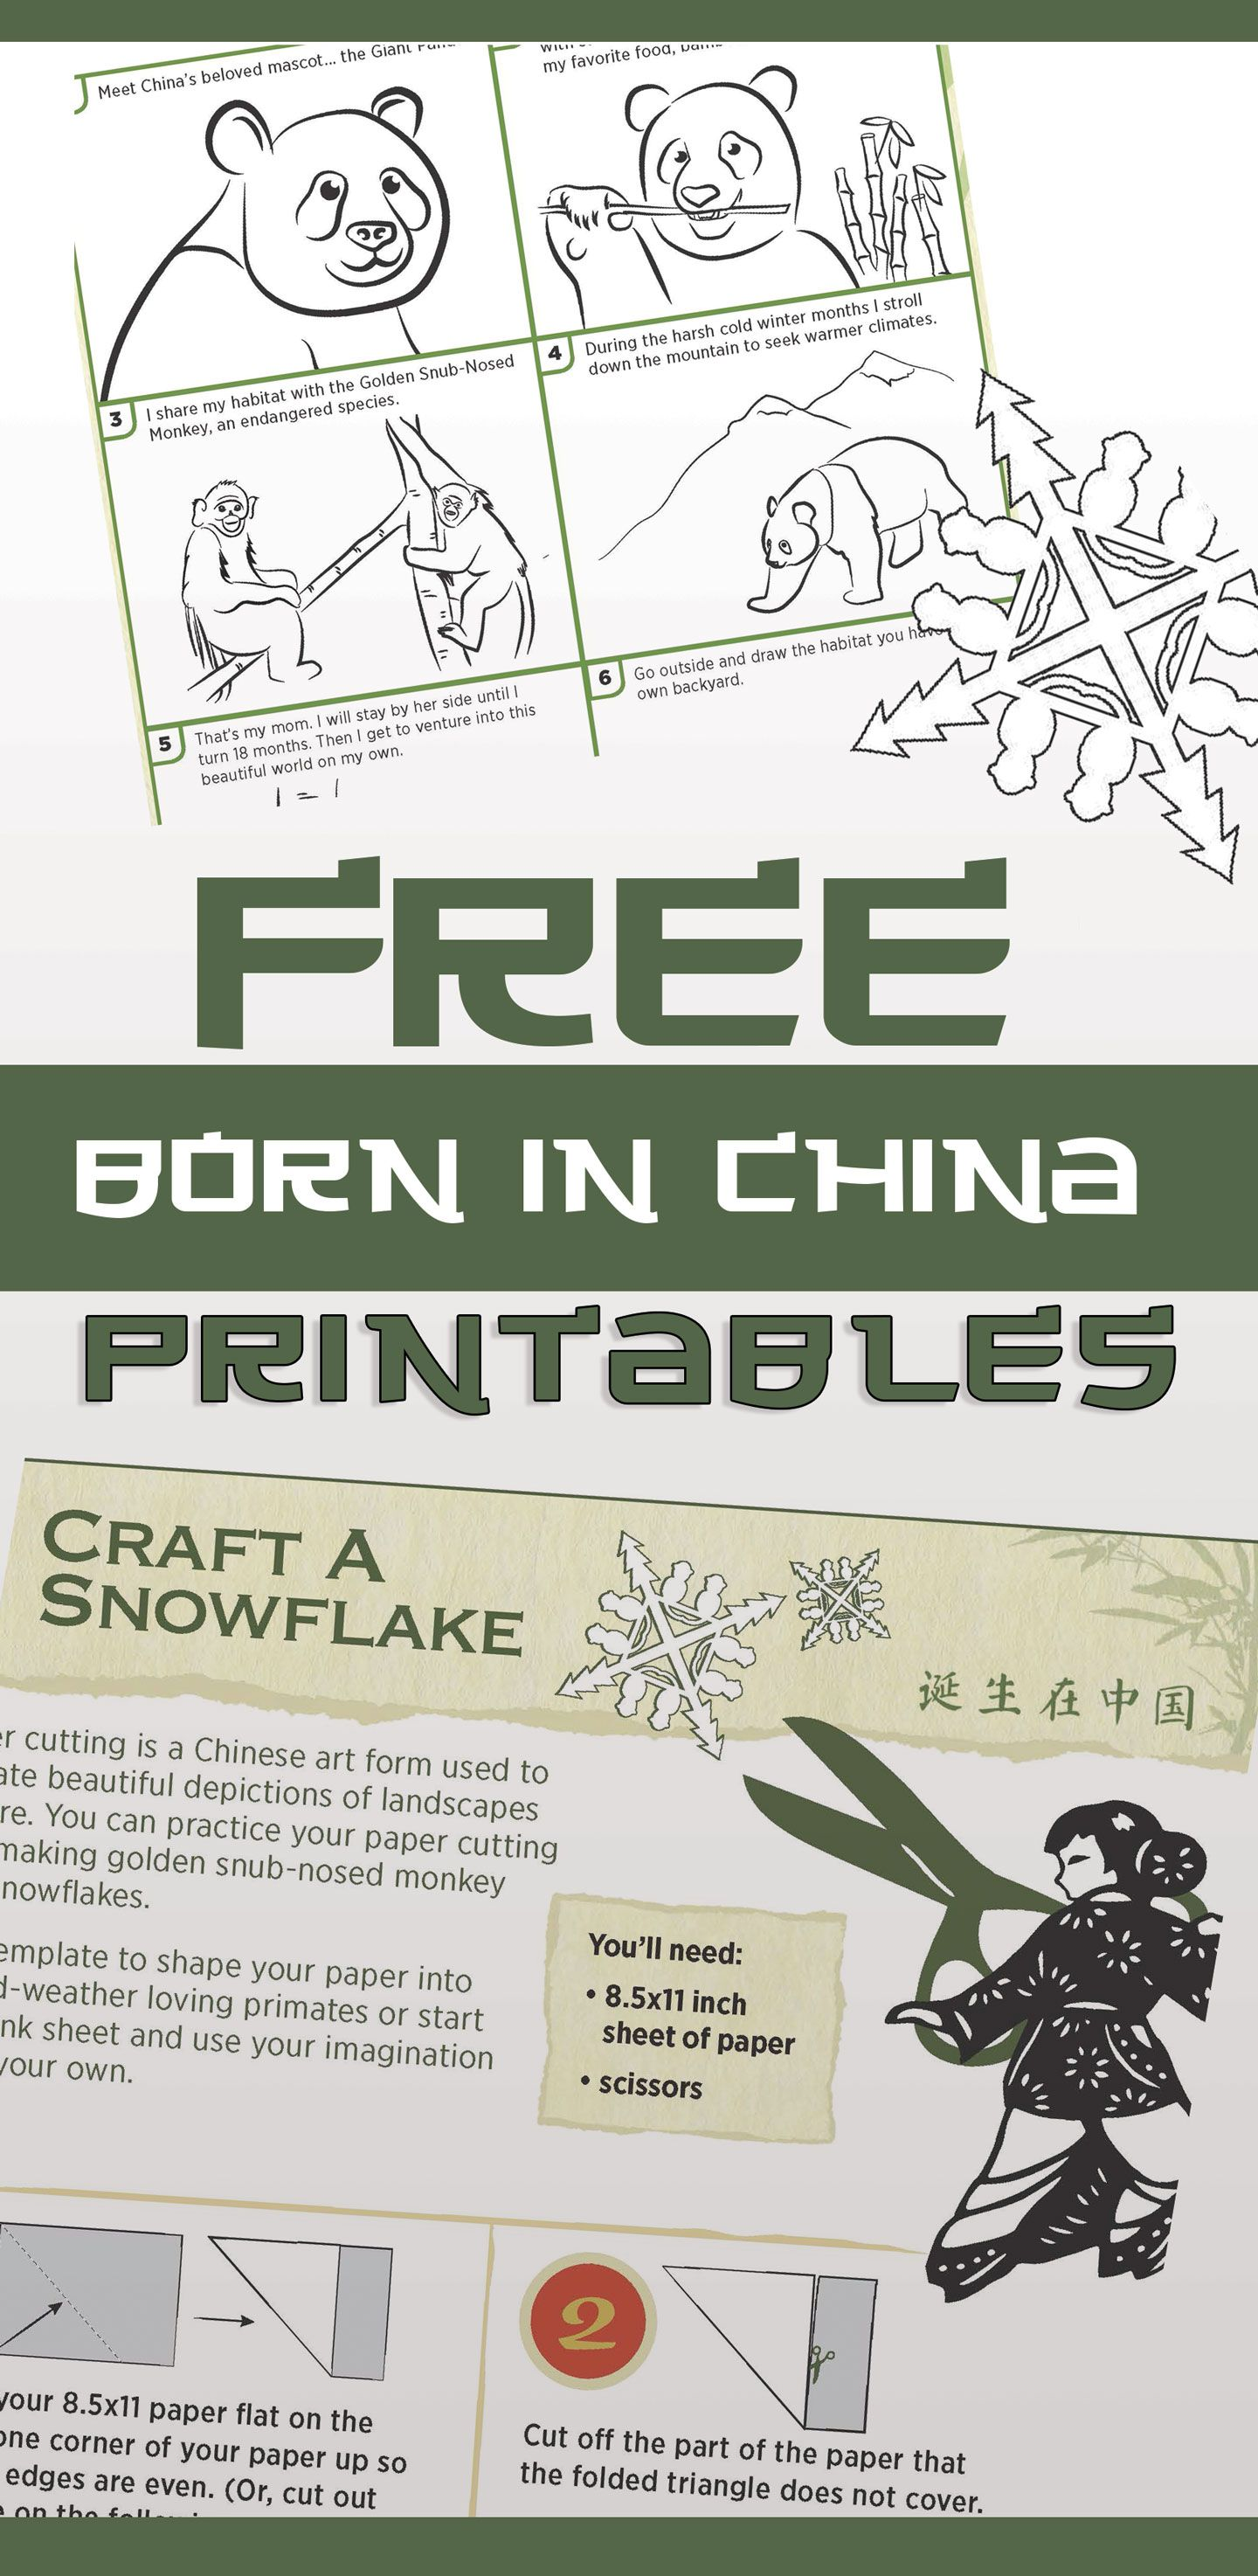 Born in China printable activity sheets from Disney! | Curriculum ...